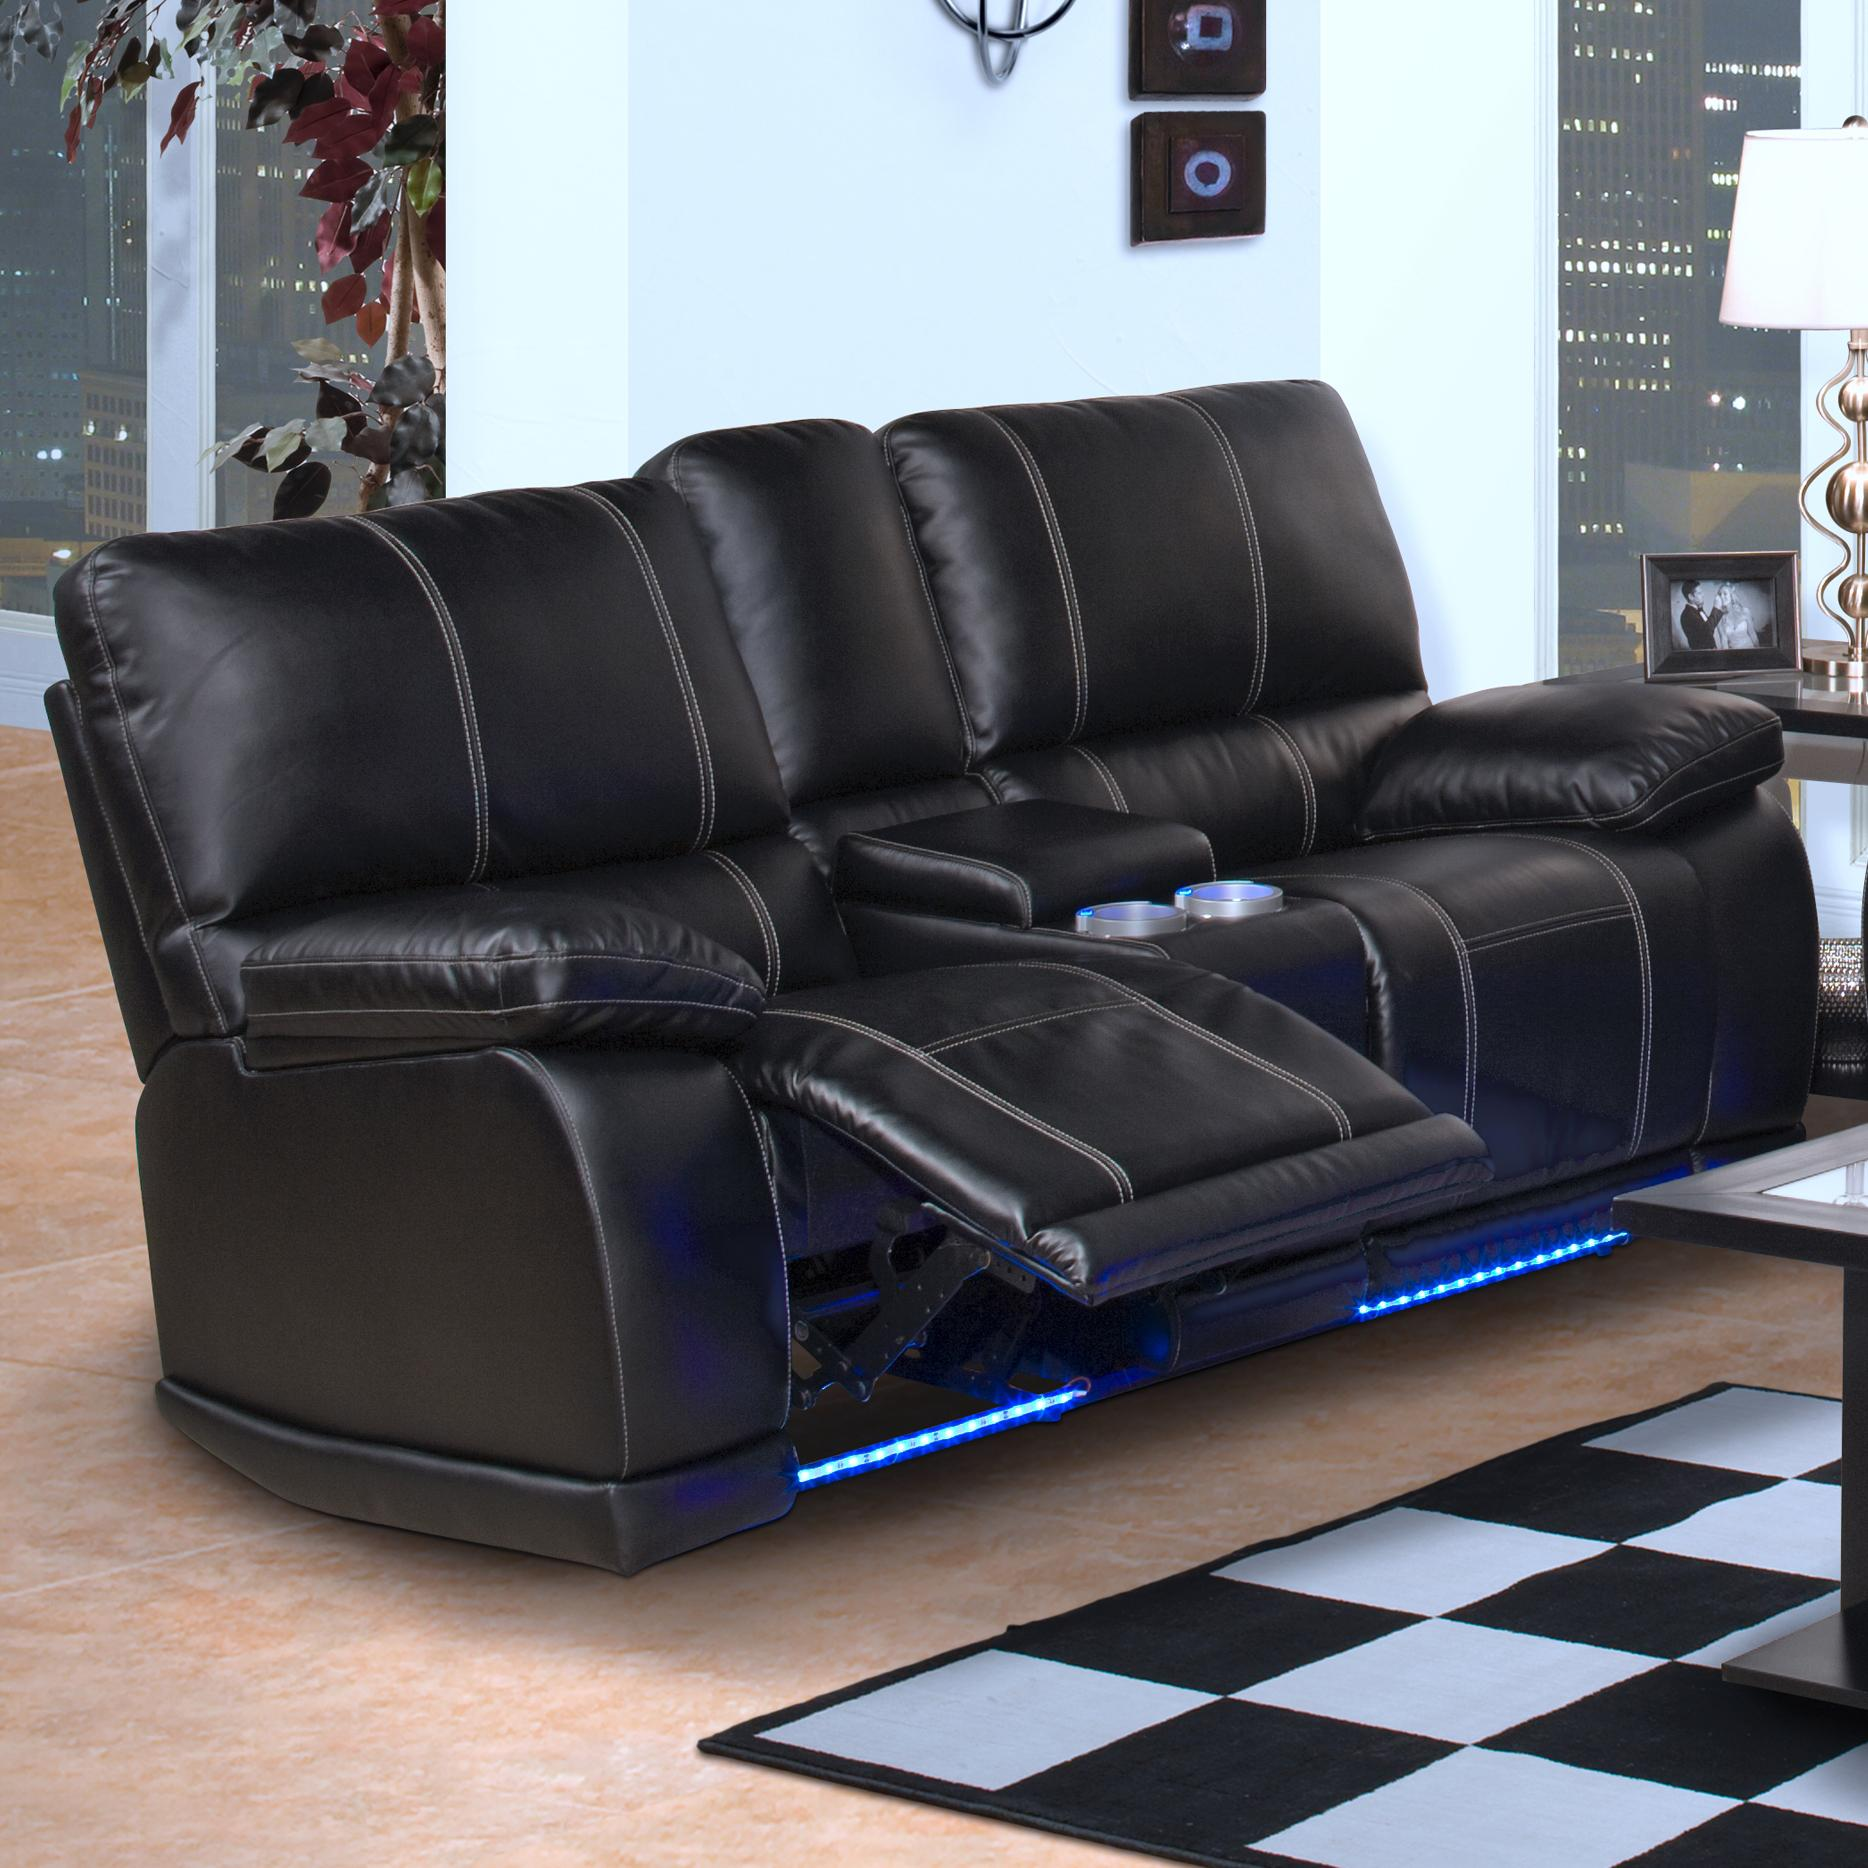 new classic electra contemporary dual recliner console loveseat with cup holders and storage. Black Bedroom Furniture Sets. Home Design Ideas